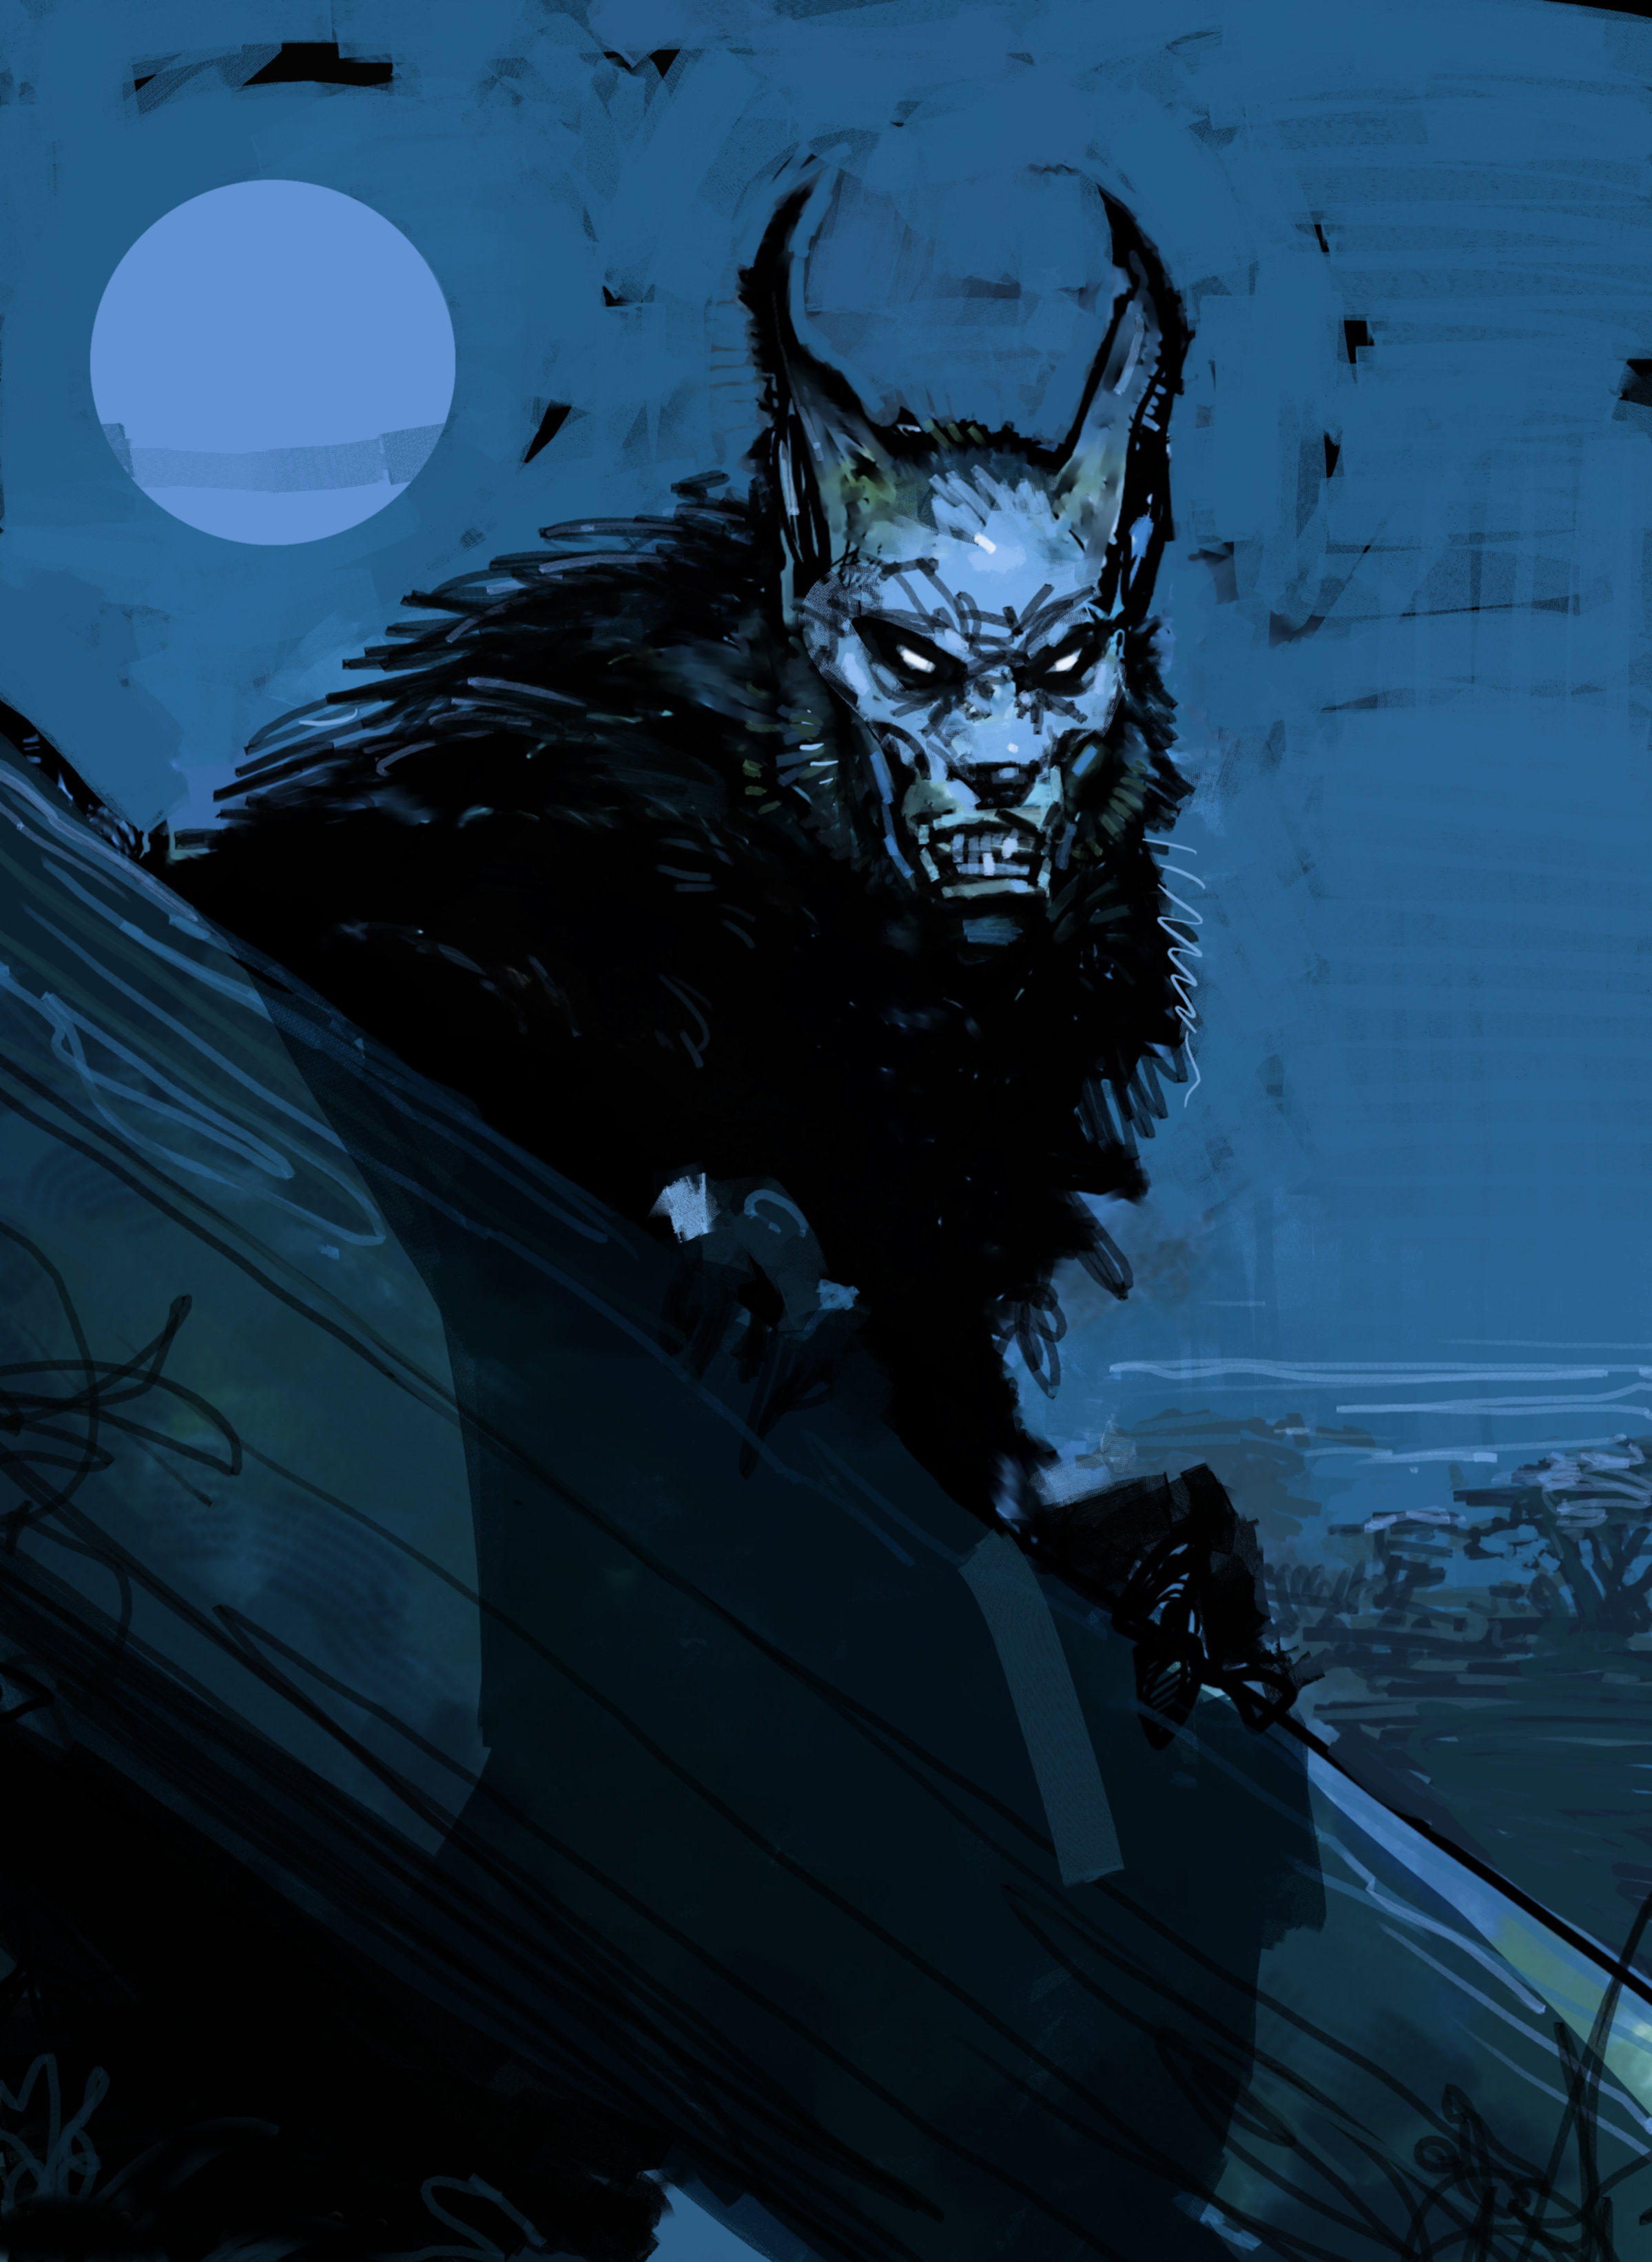 A werewolf snarling under a full moon from the Prisoner of Azkaban